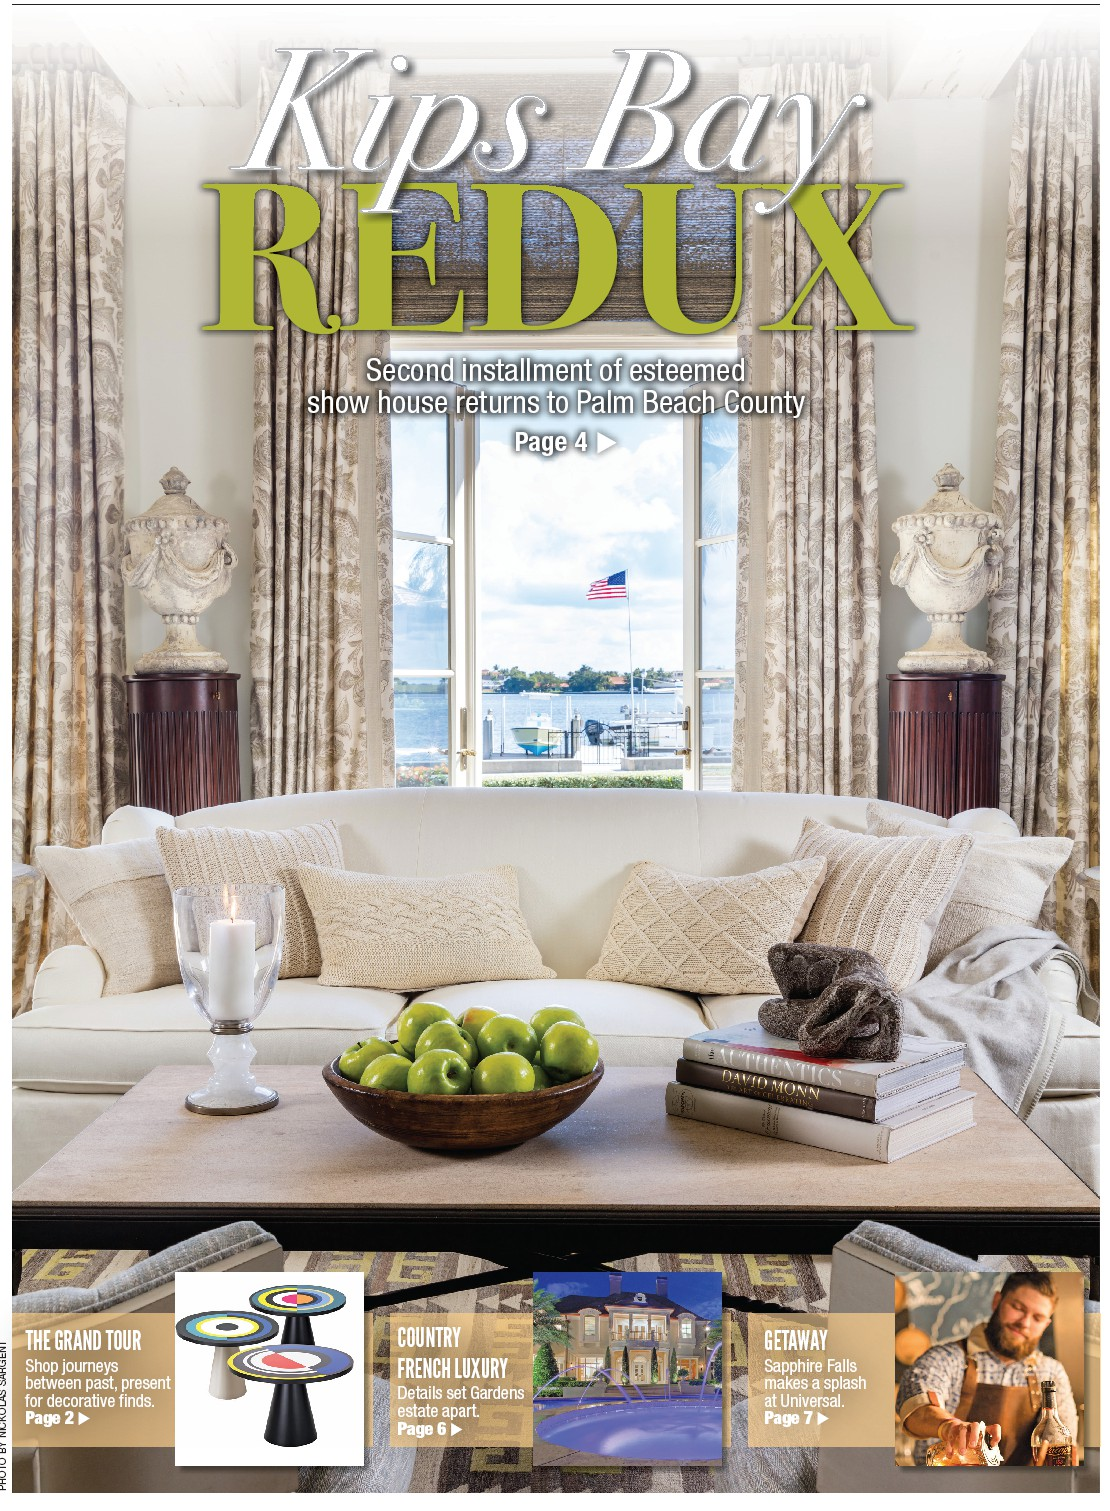 Kips Bay Redux Palm Beach Florida Weekly